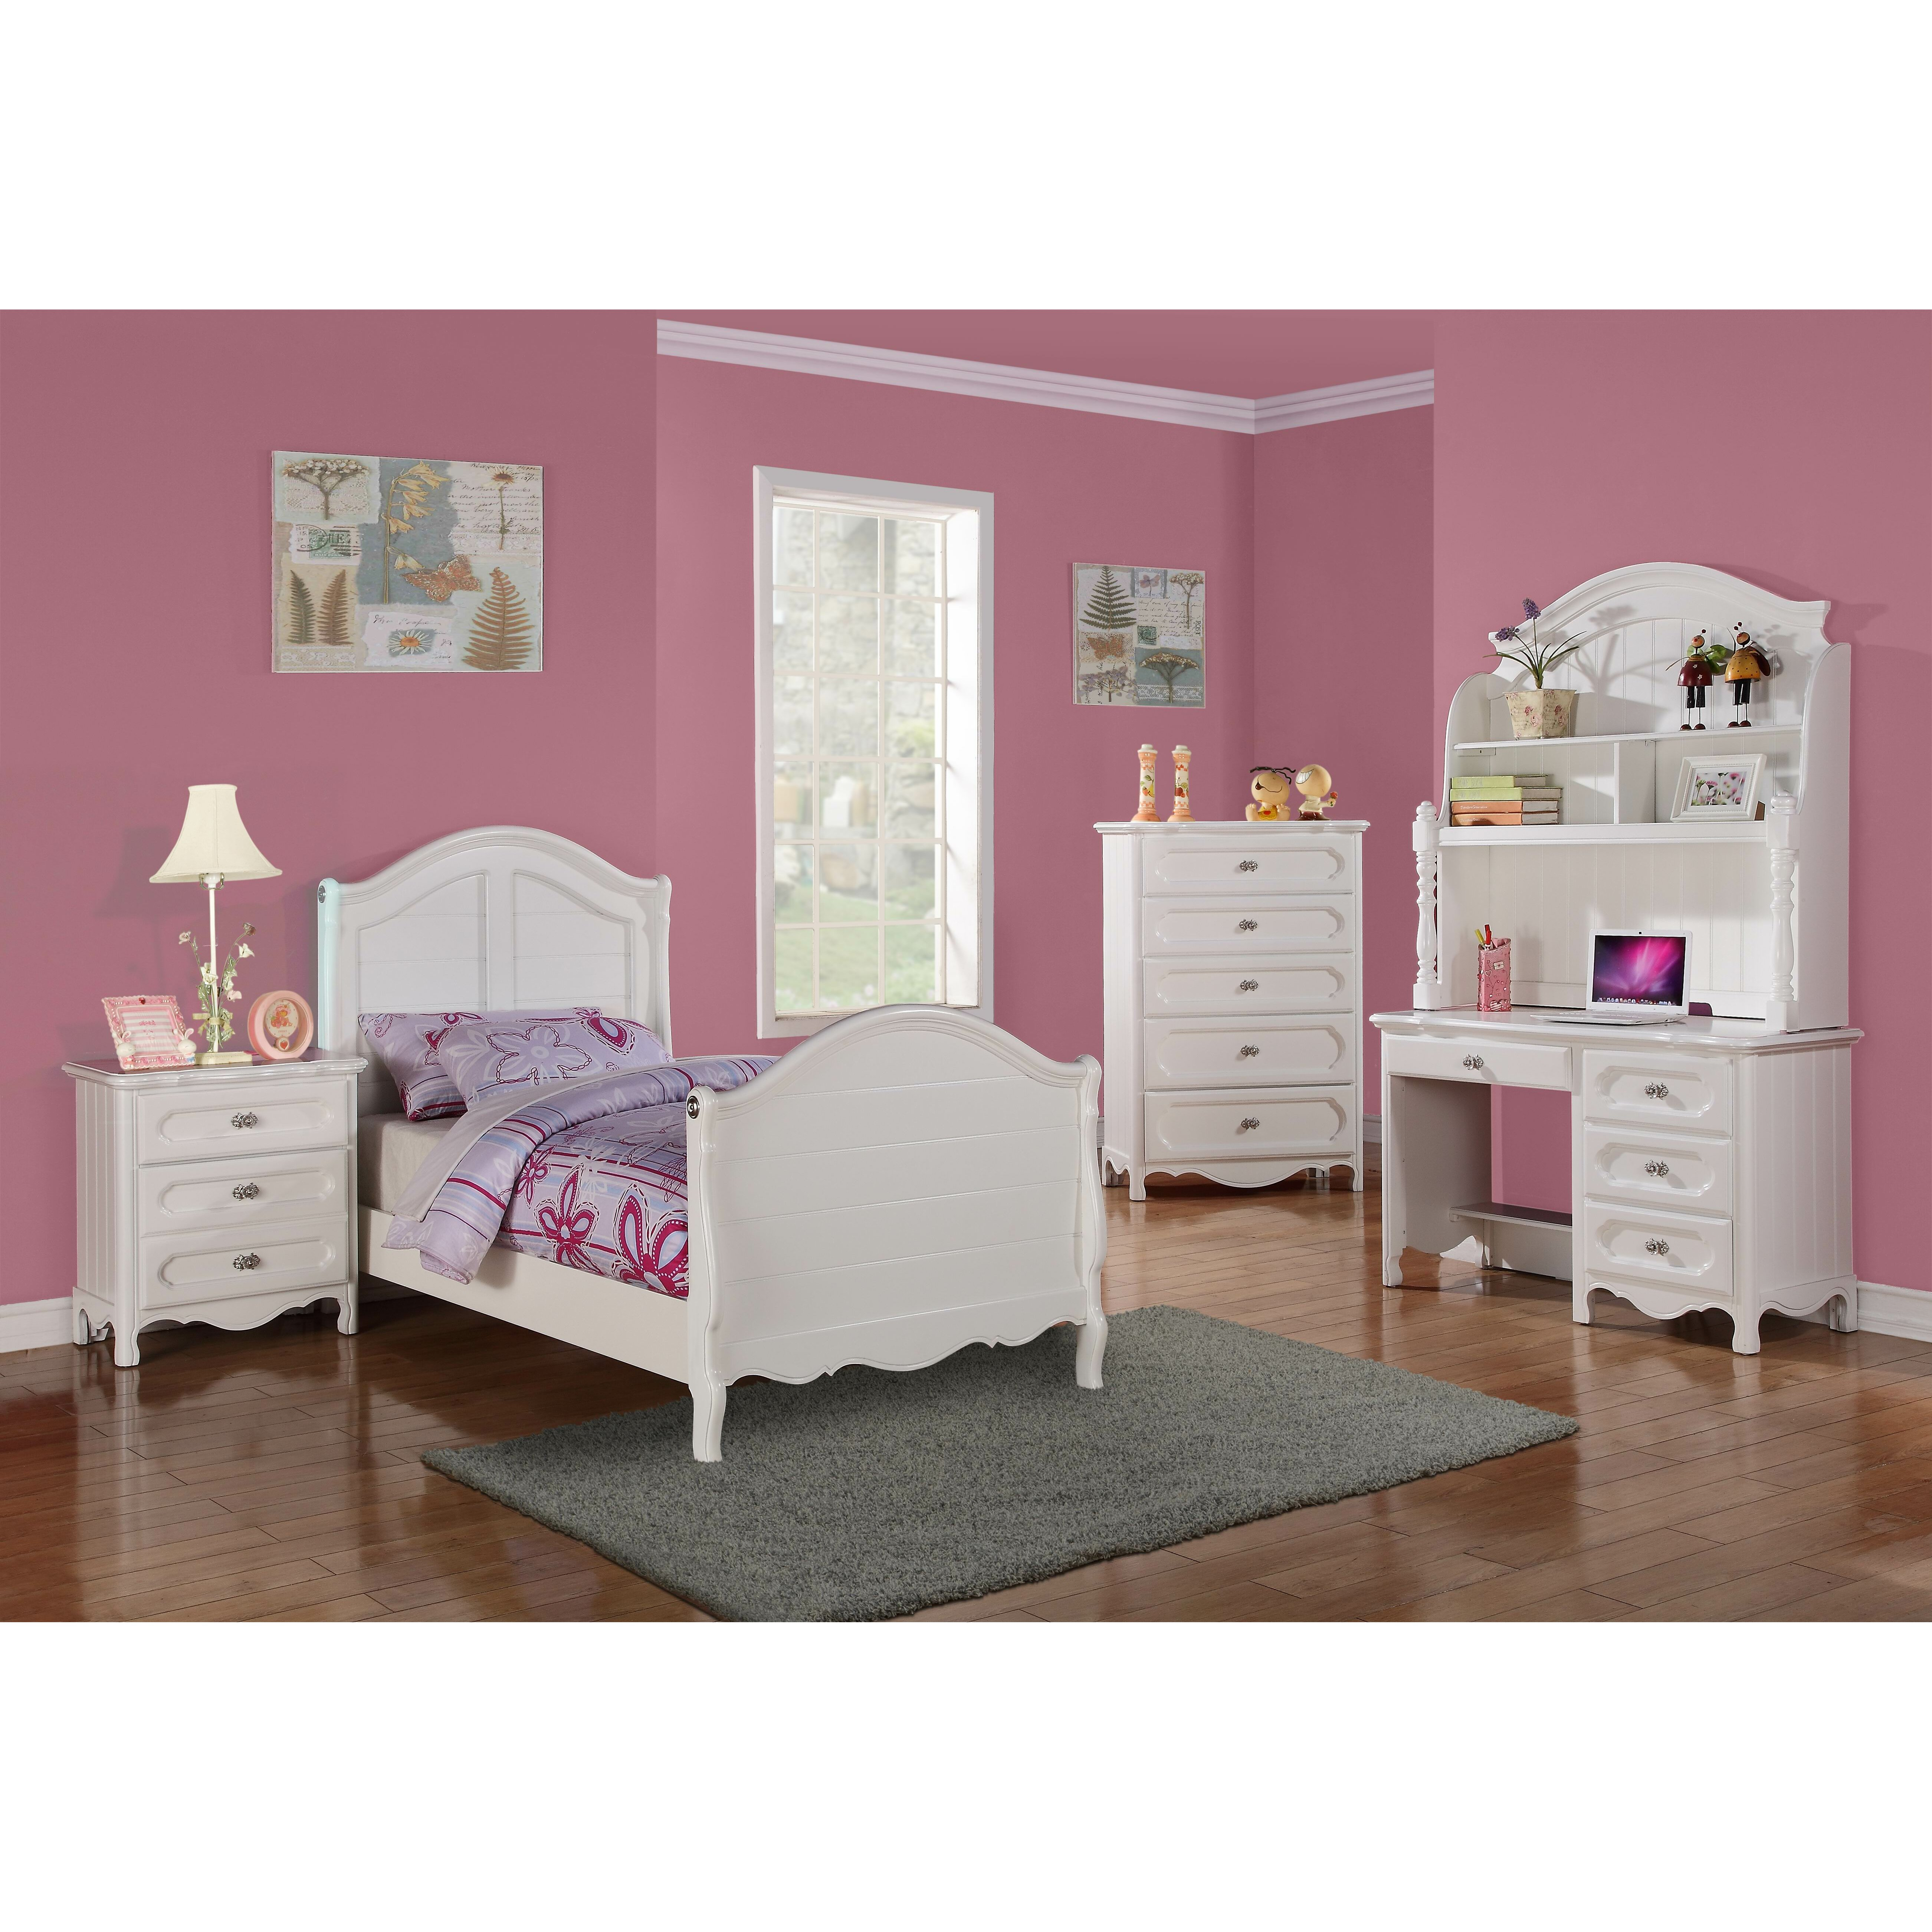 Woodhaven hill hayley sleigh customizable bedroom set for 4 year old bedroom ideas